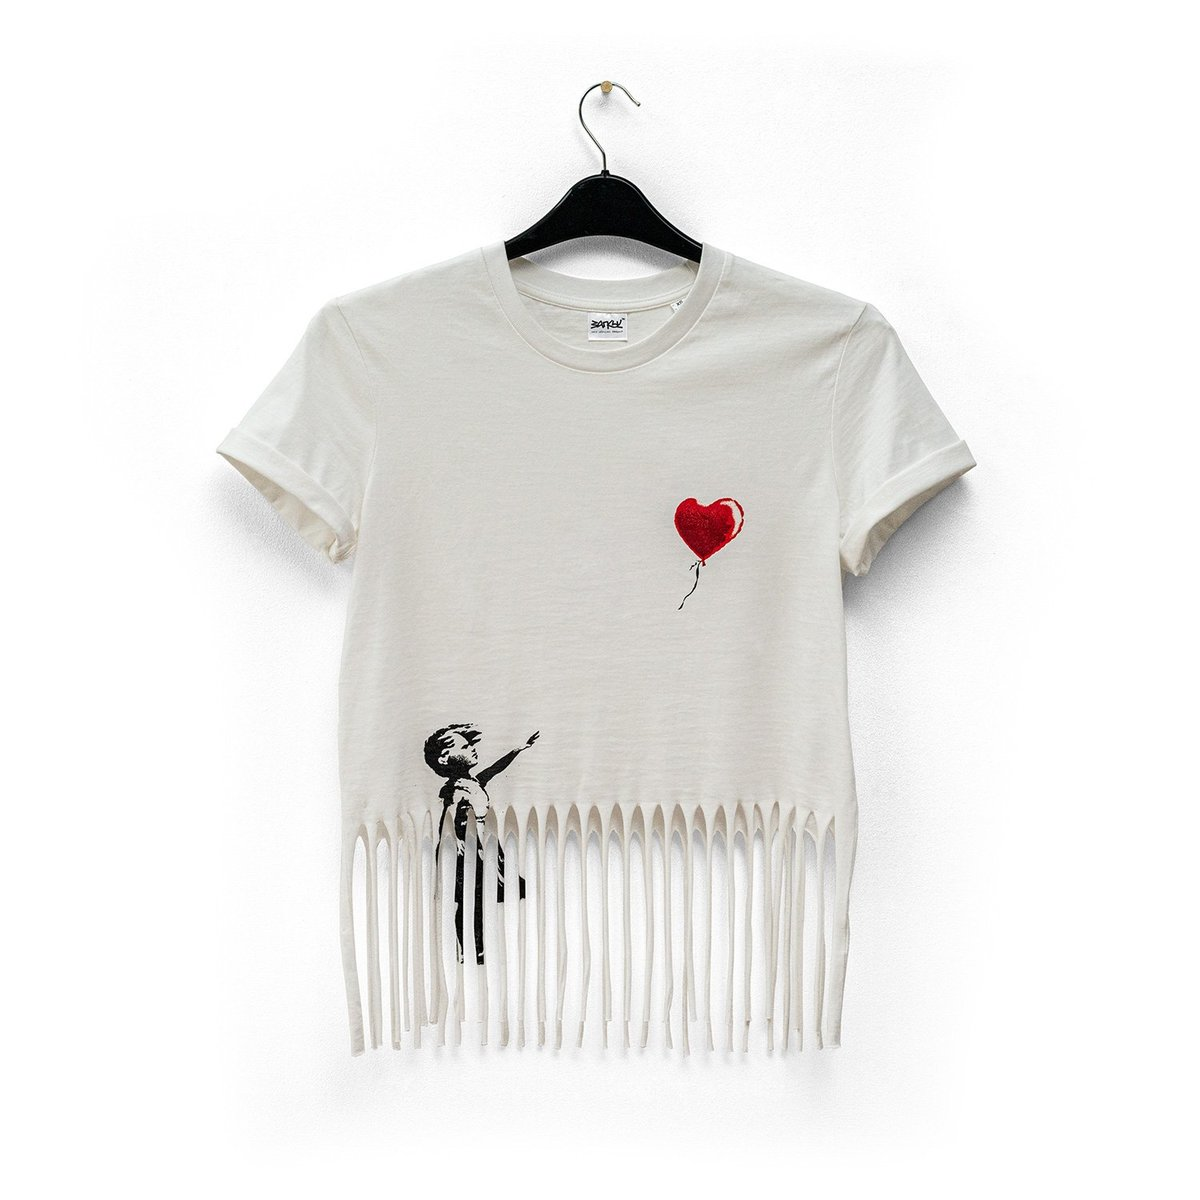 Banksy's Weird And Wonderful Online Store Gross Domestic Product Challenges Convention